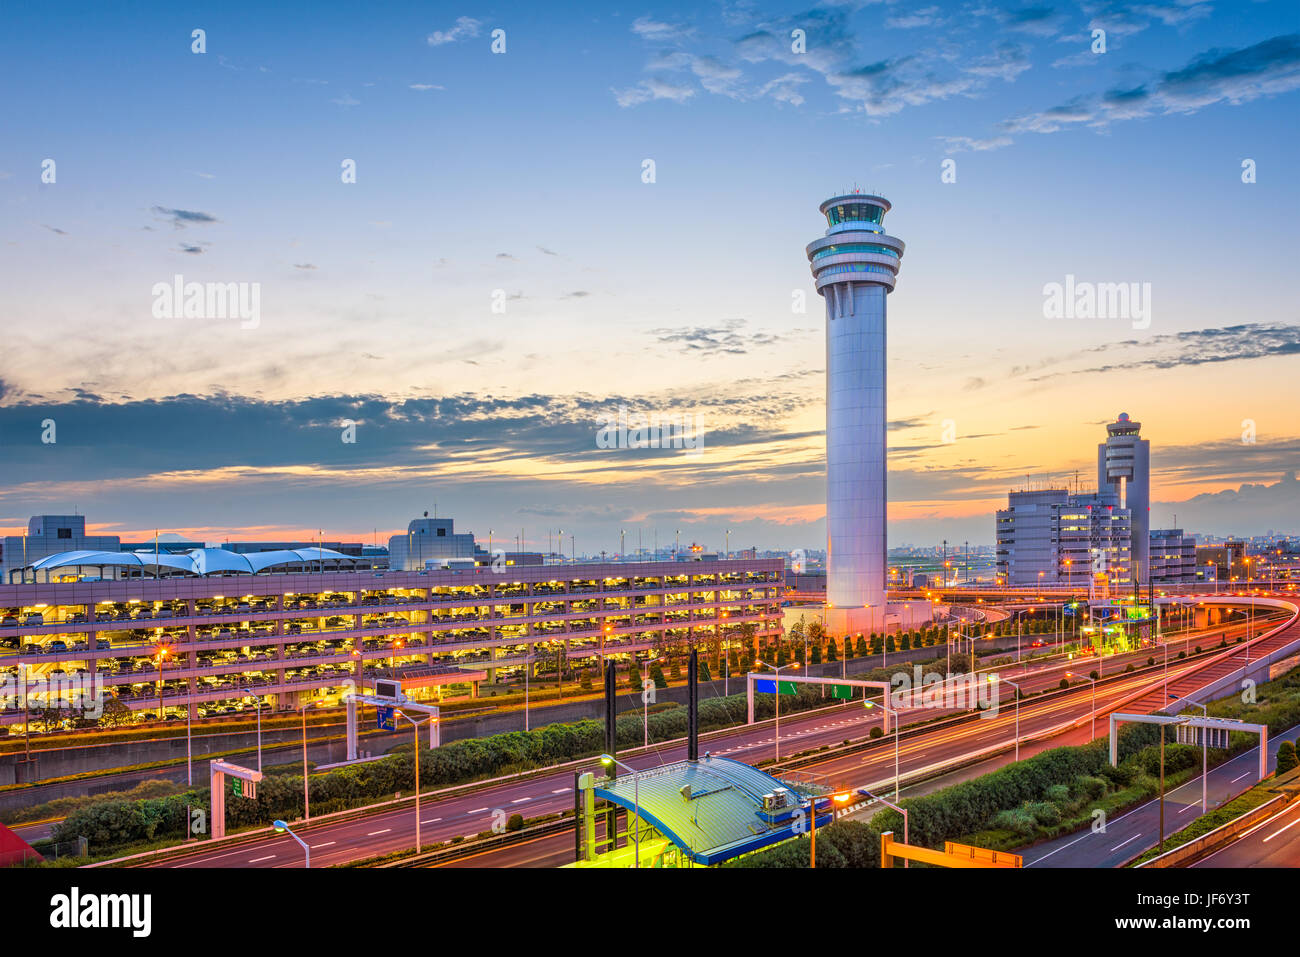 Tokyo, Japan at the control tower of Haneda Airport. - Stock Image